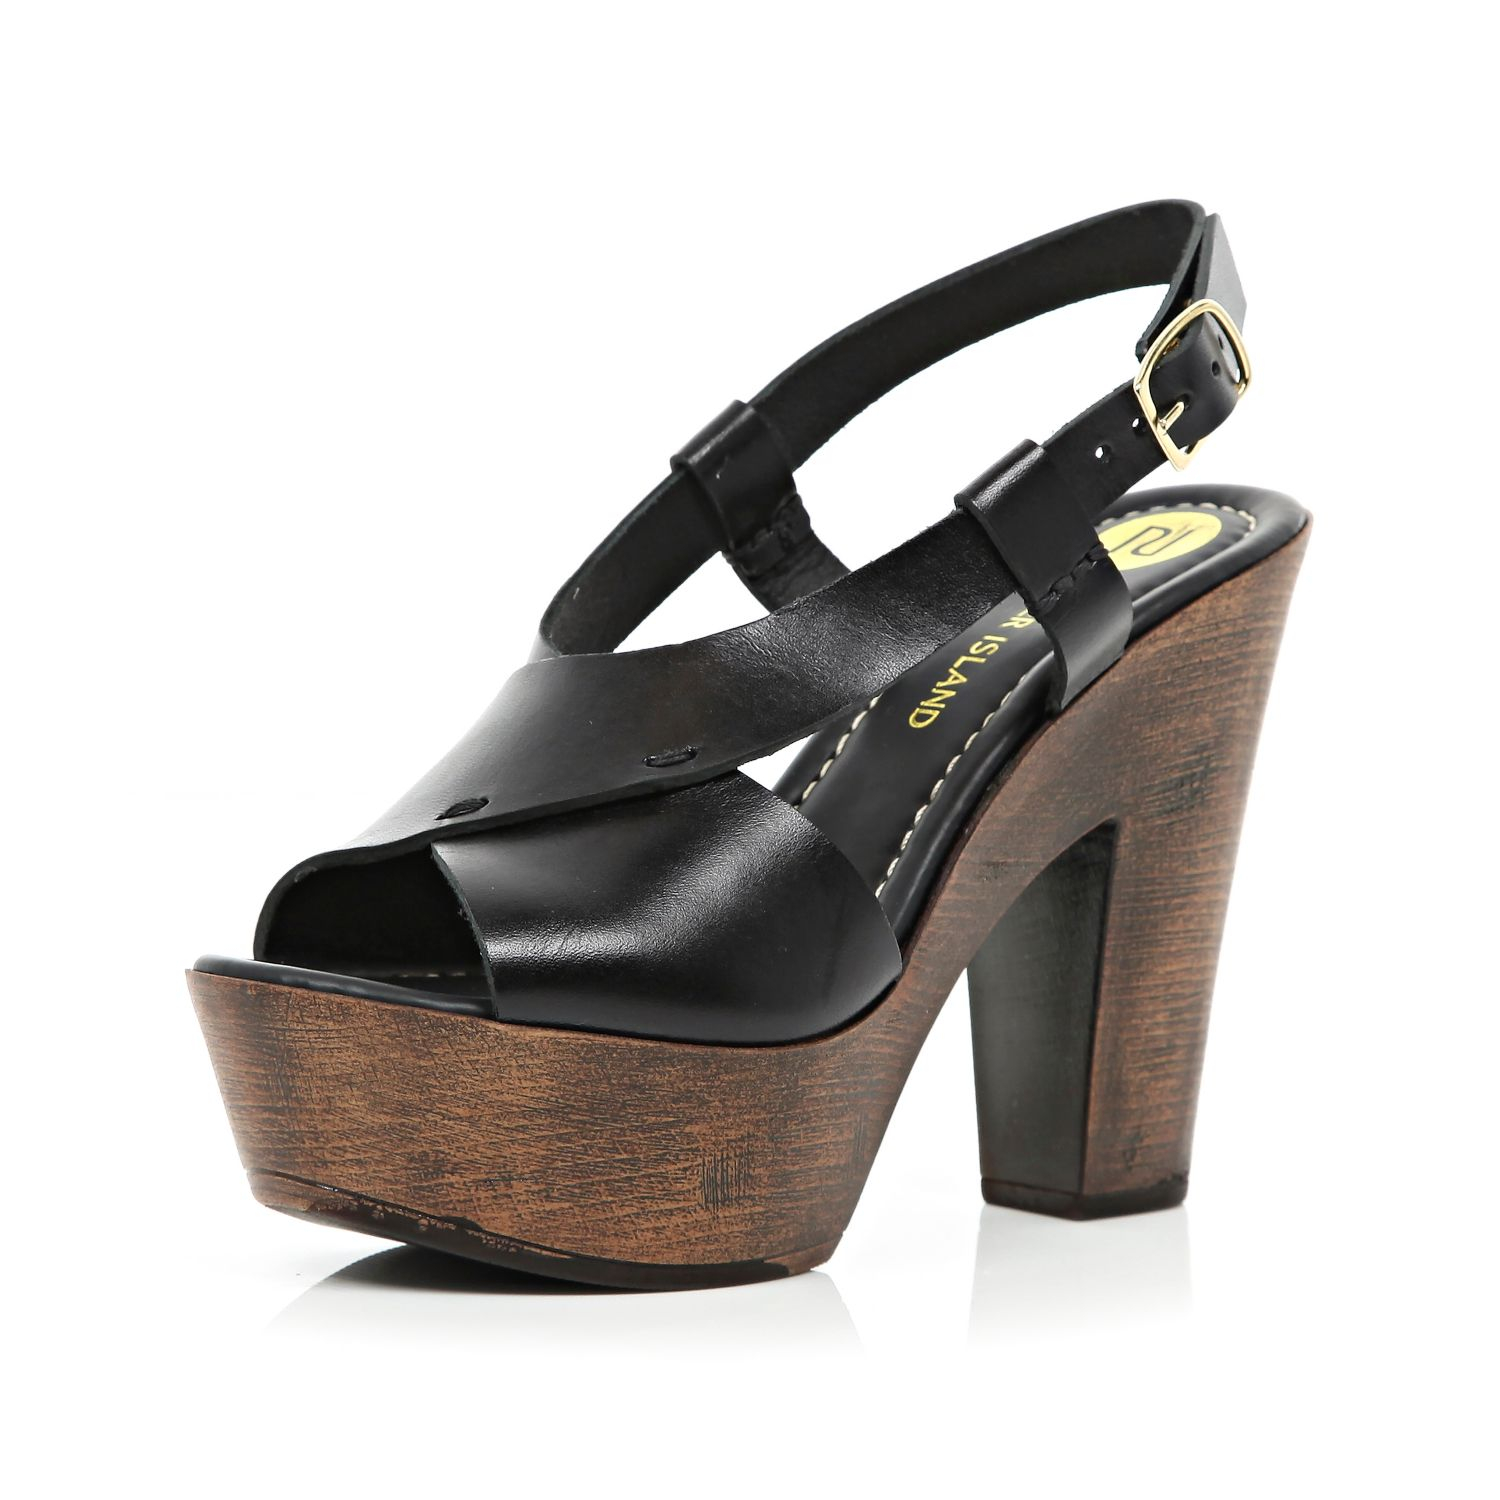 420bf63d945f Summer Wedge Sandals River Island.Lyst River Island Black Cross ...